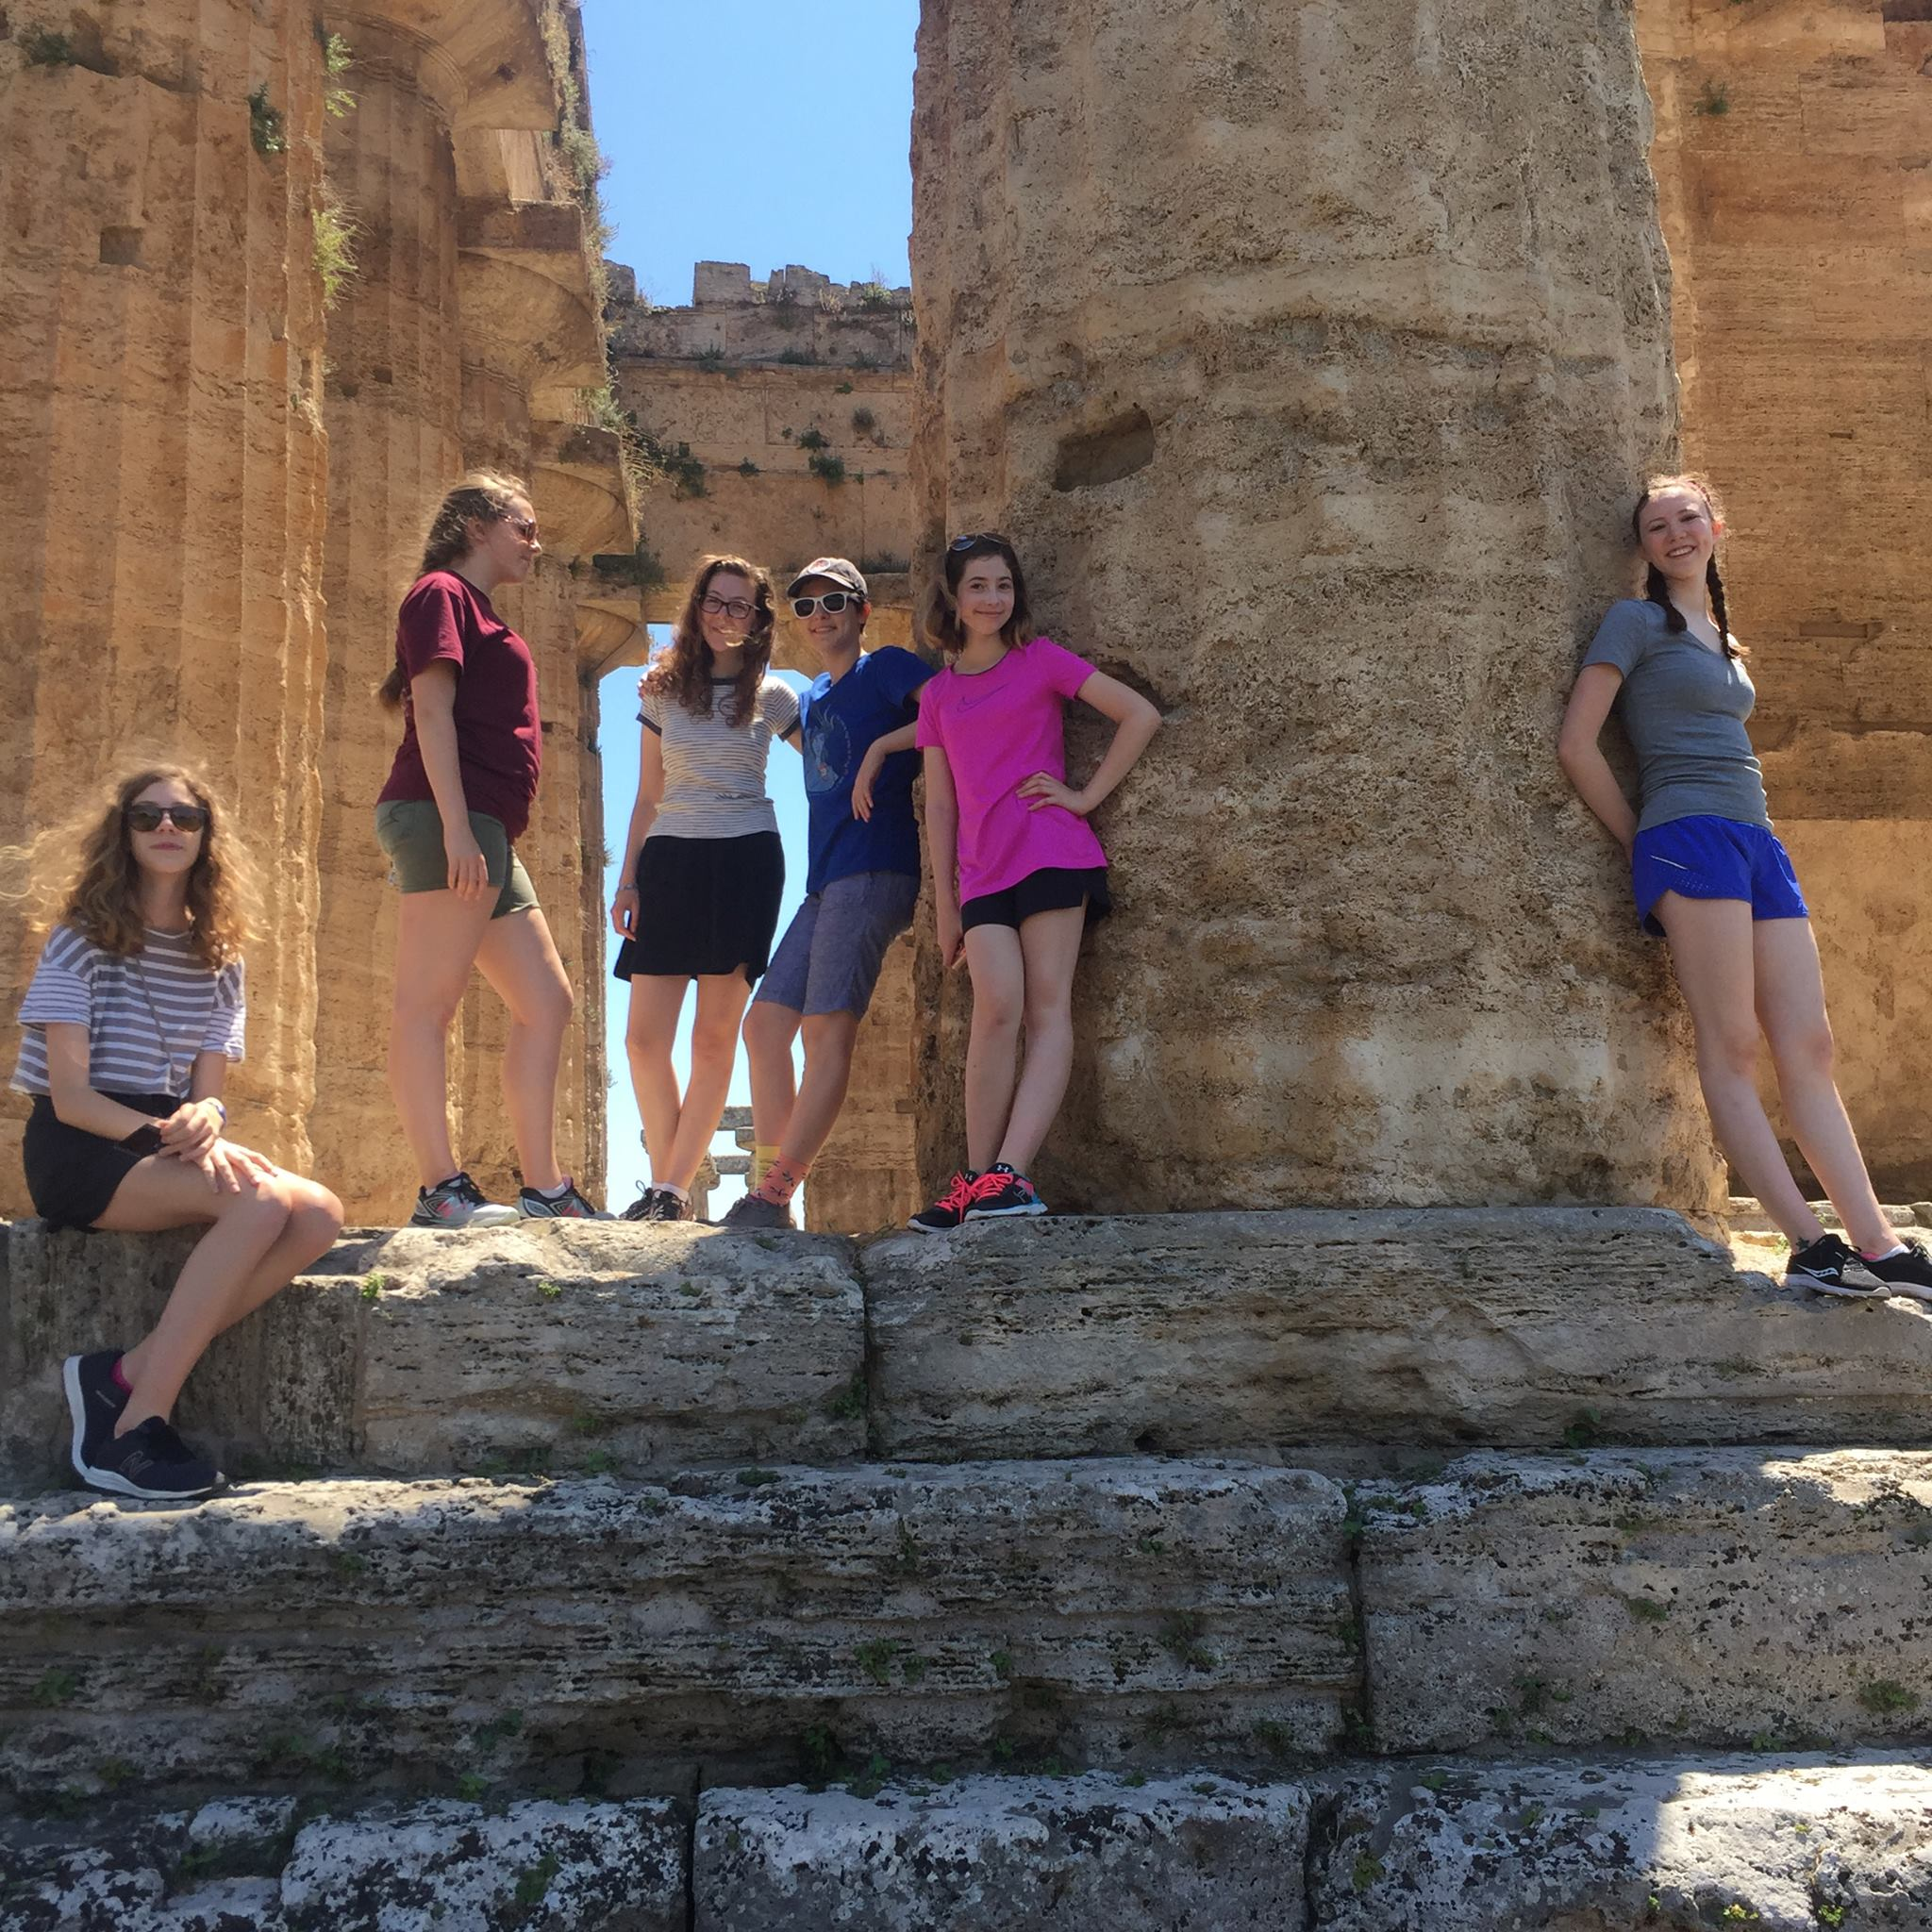 Students on tour at the Paestum Temples, just south of Salerno, Italy.